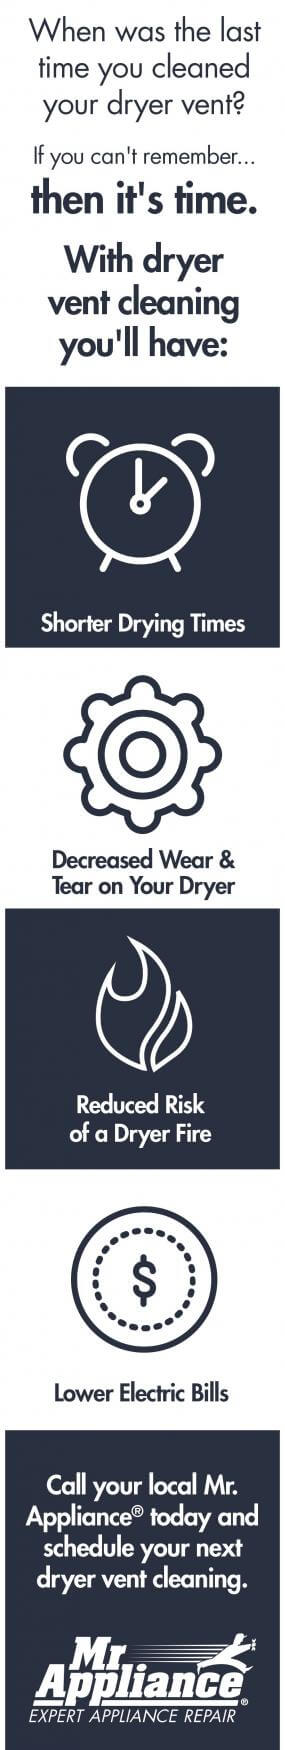 Benefits Of Dryer Vent Cleaning Mr Appliance Blog